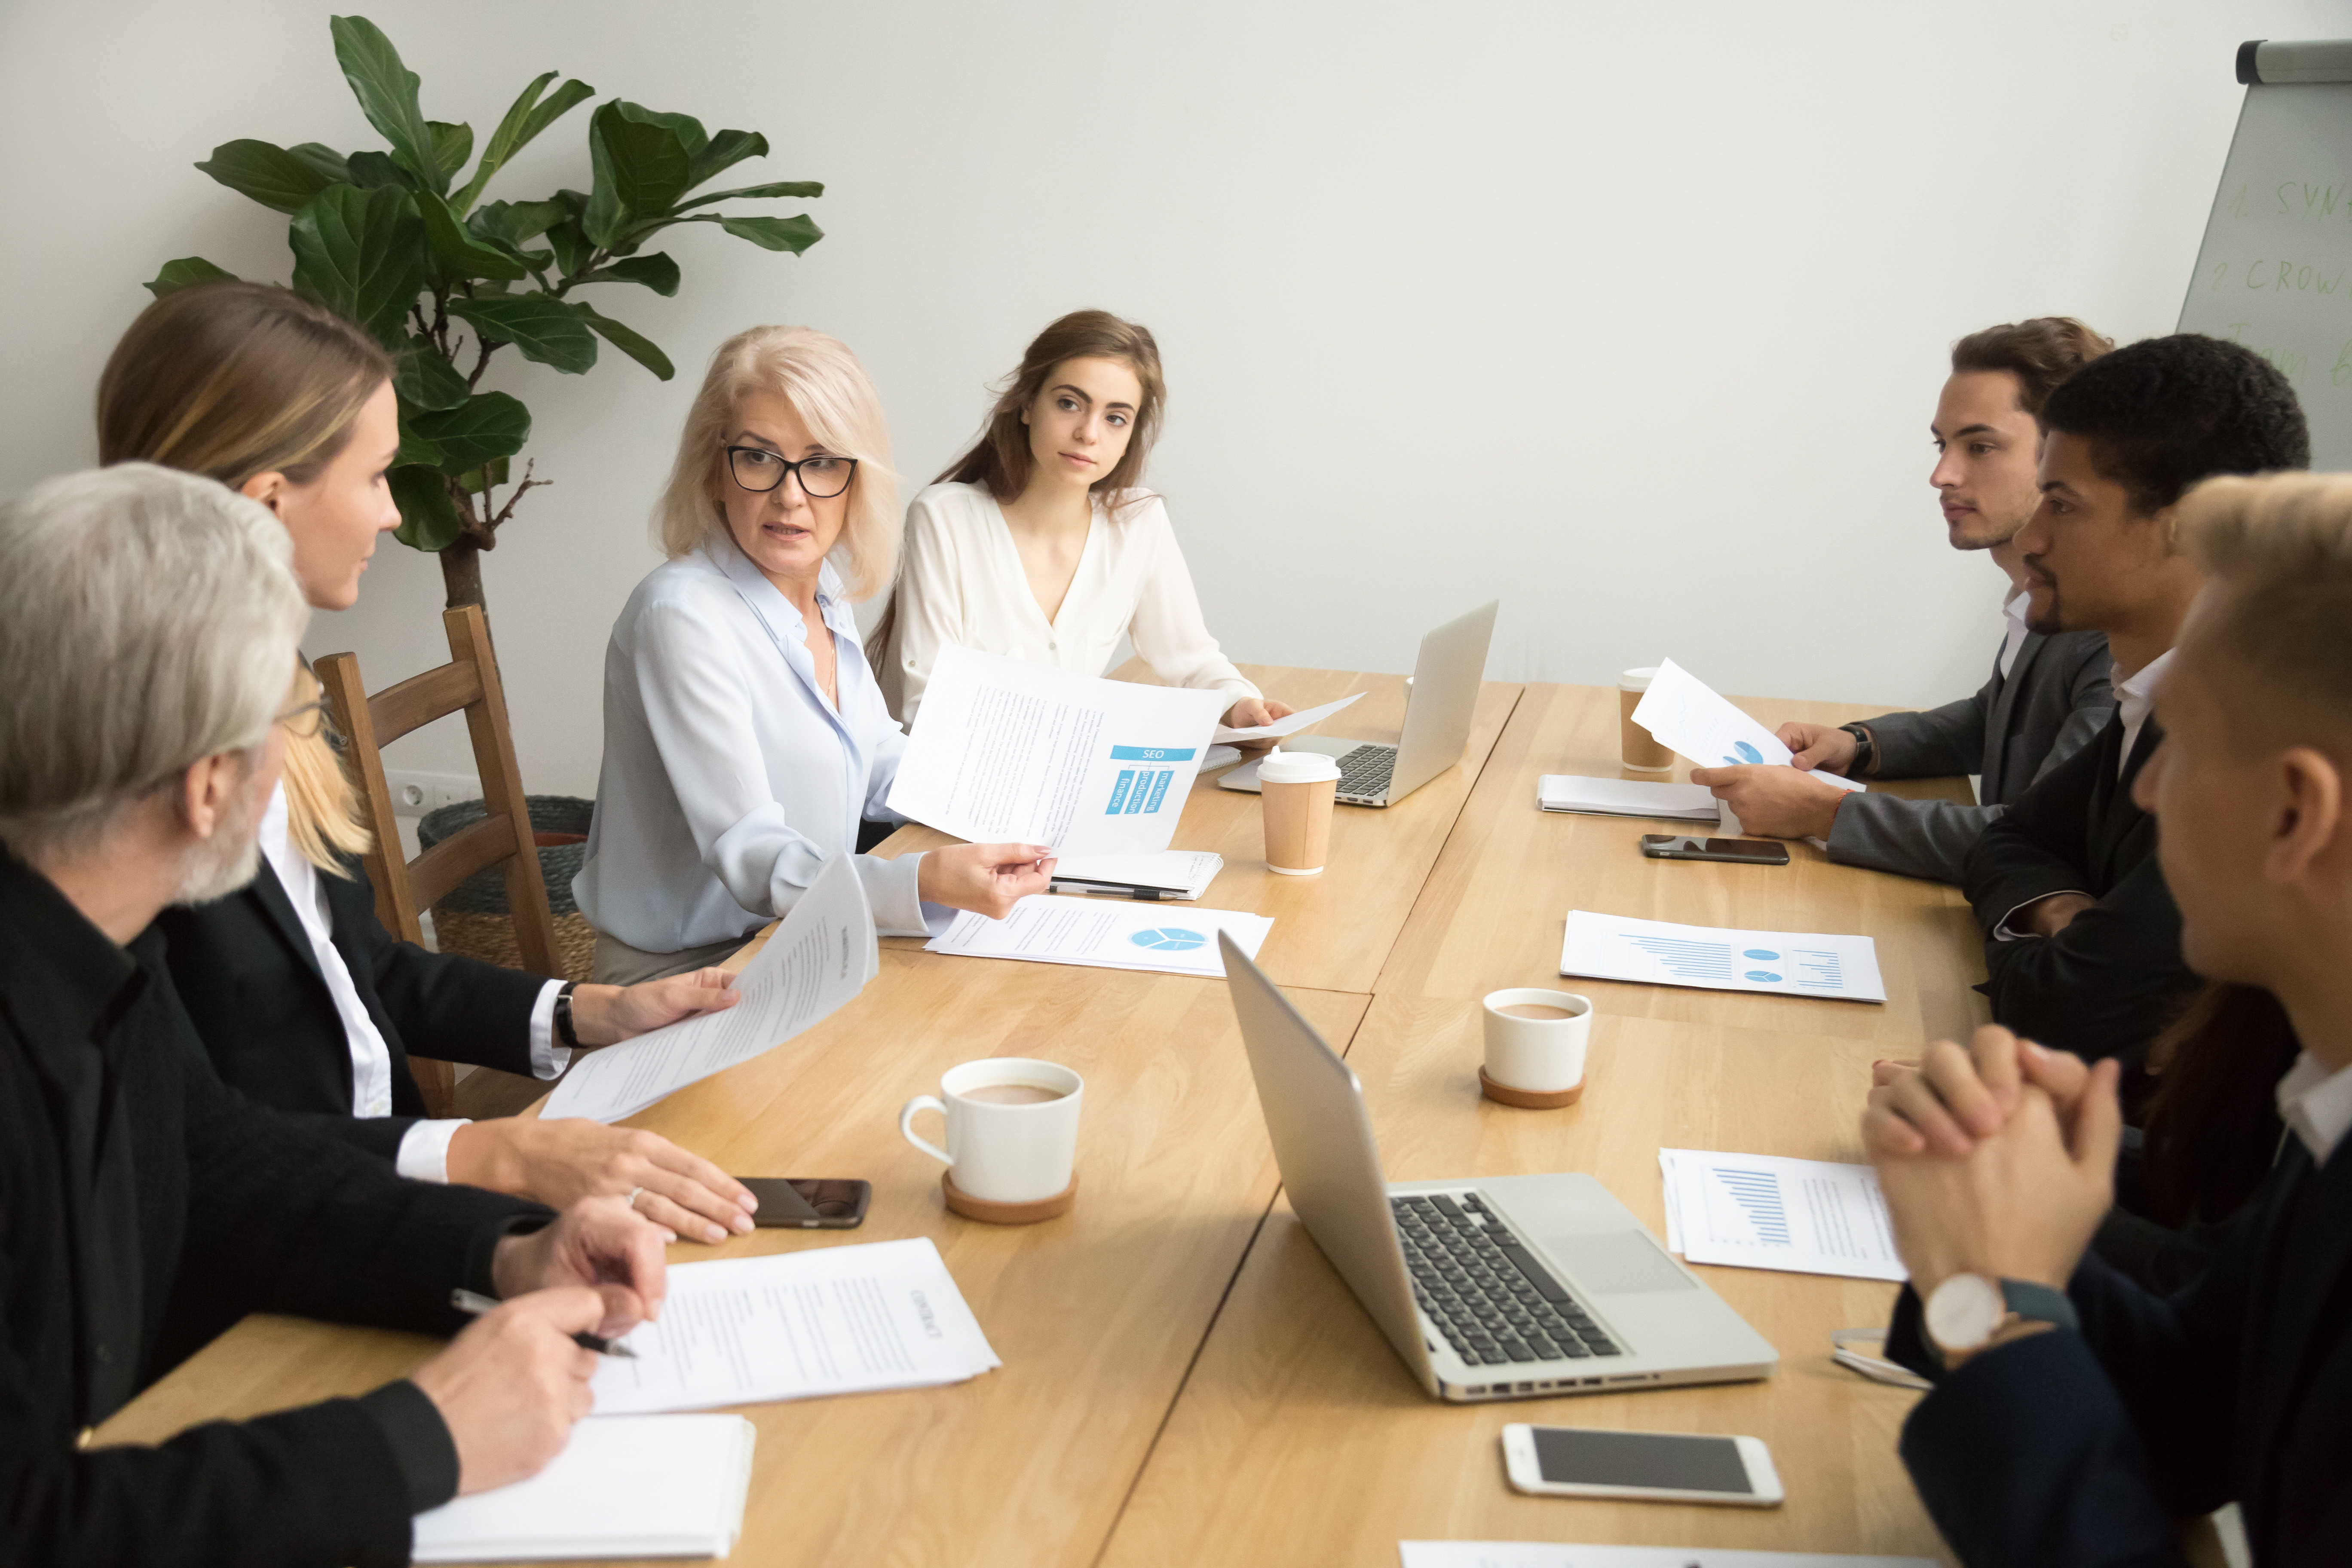 Serious aged businesswoman discussing corporate financial report with team talking to employees, senior mature female boss ceo leader analyzing work results with subordinates at company group meeting